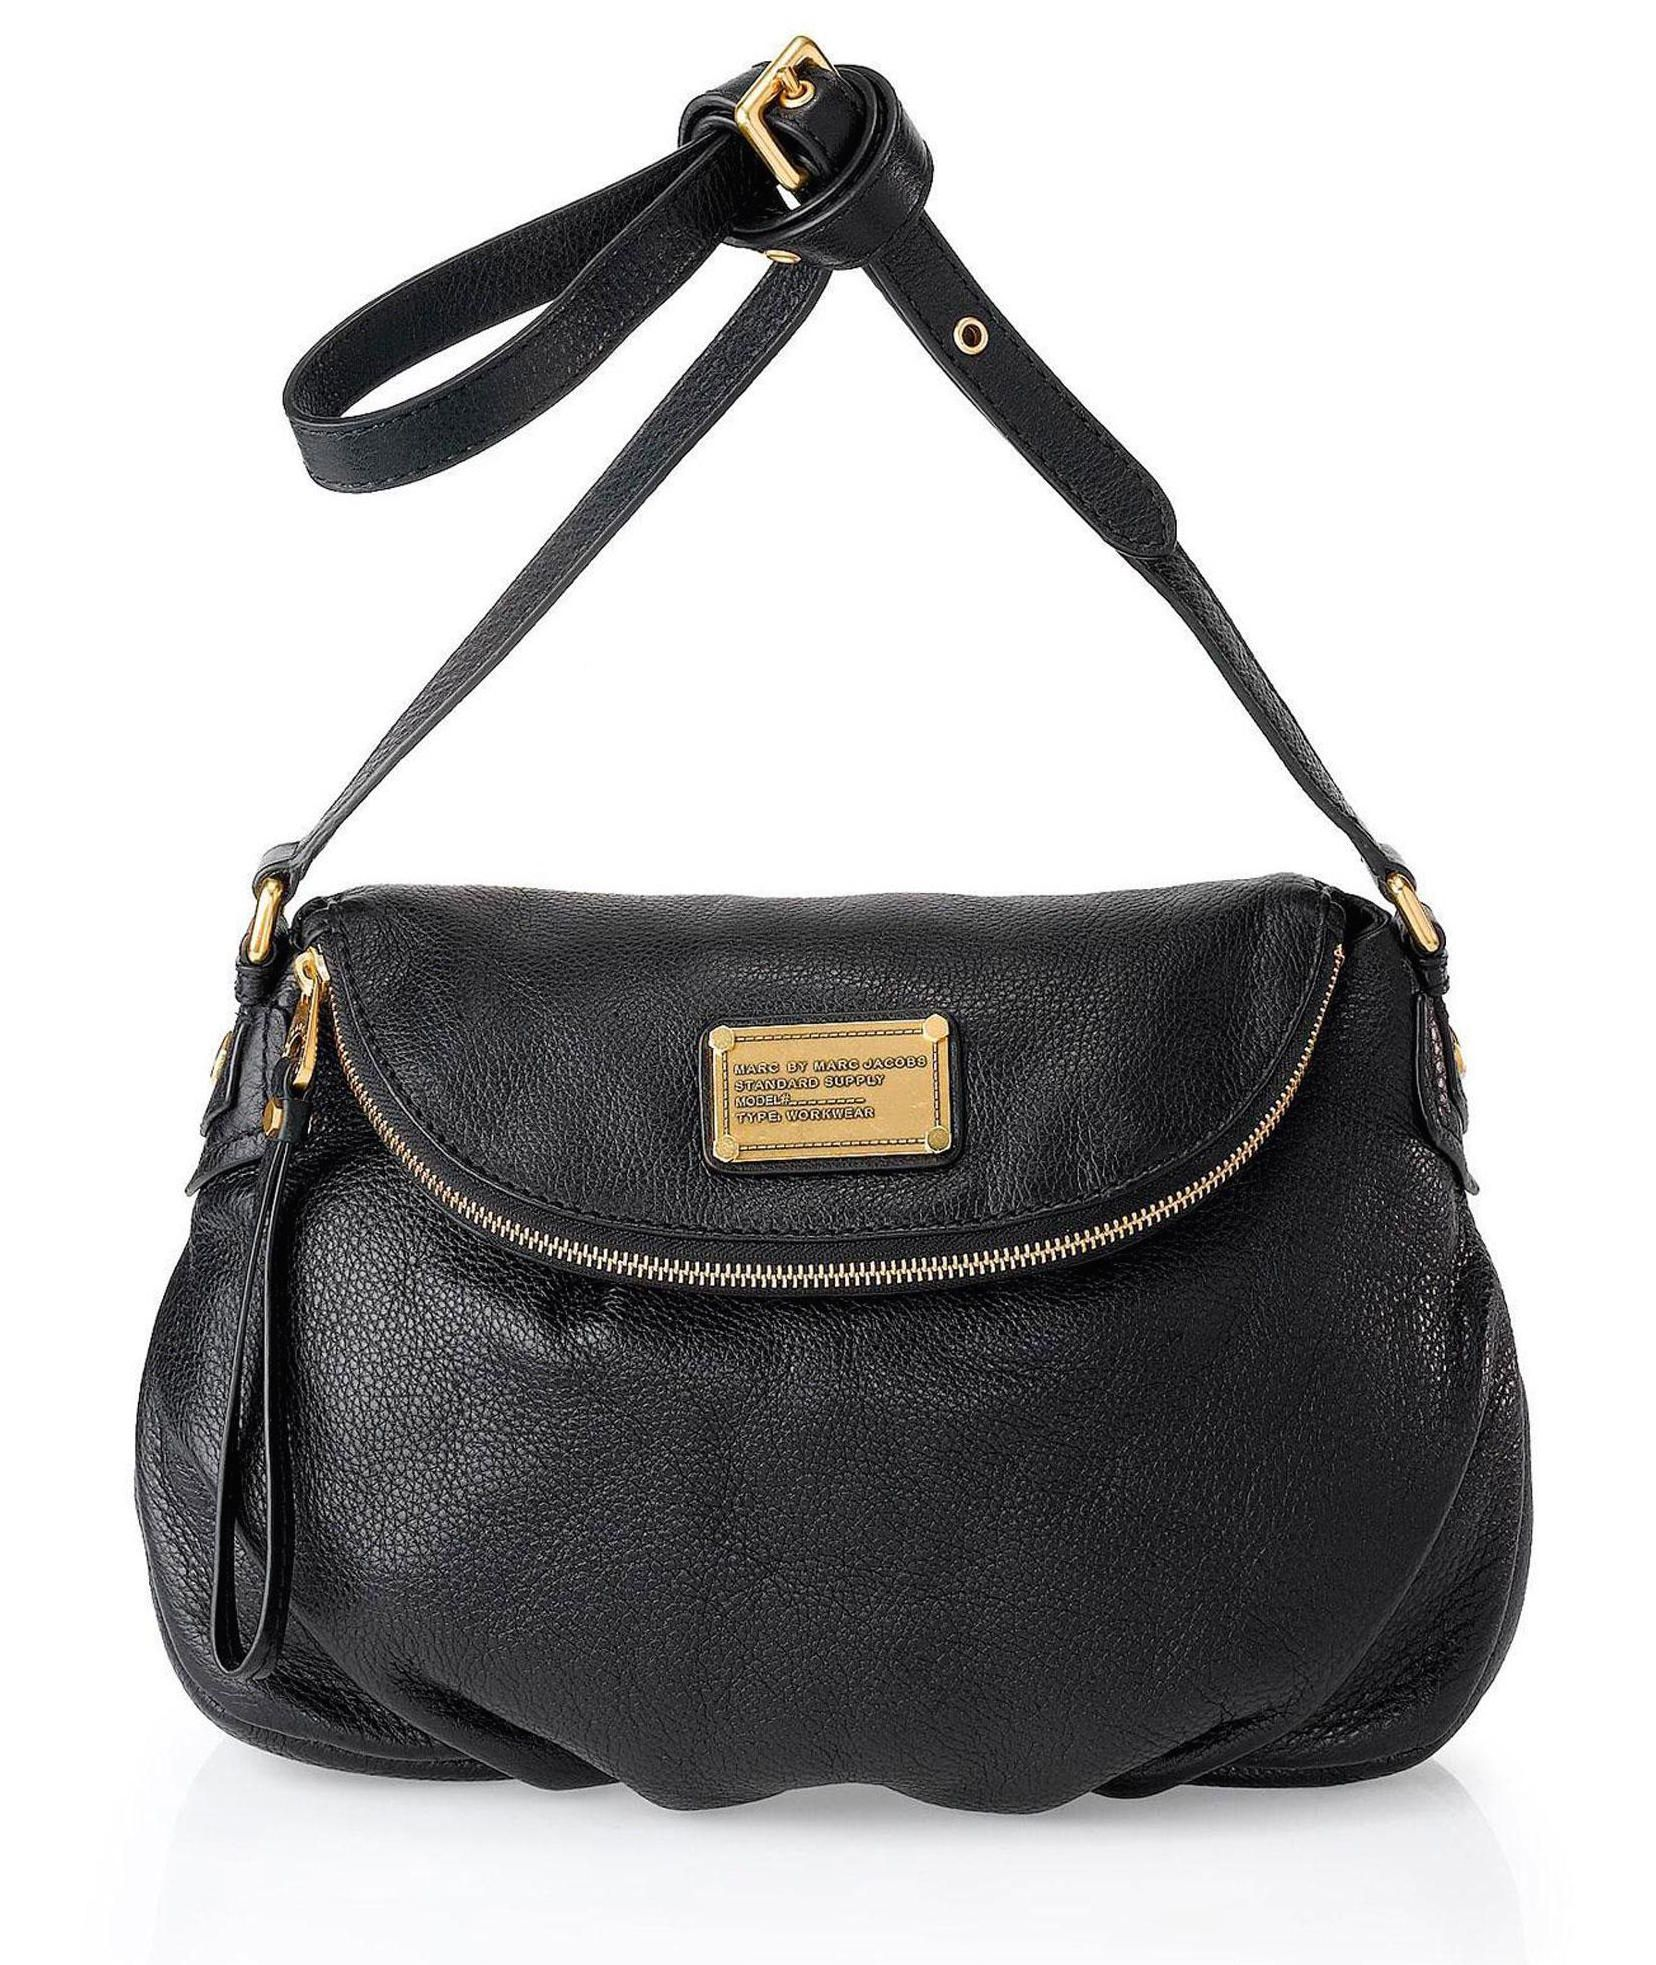 b552cc1ba5 Marc Jacobs crossbody bag